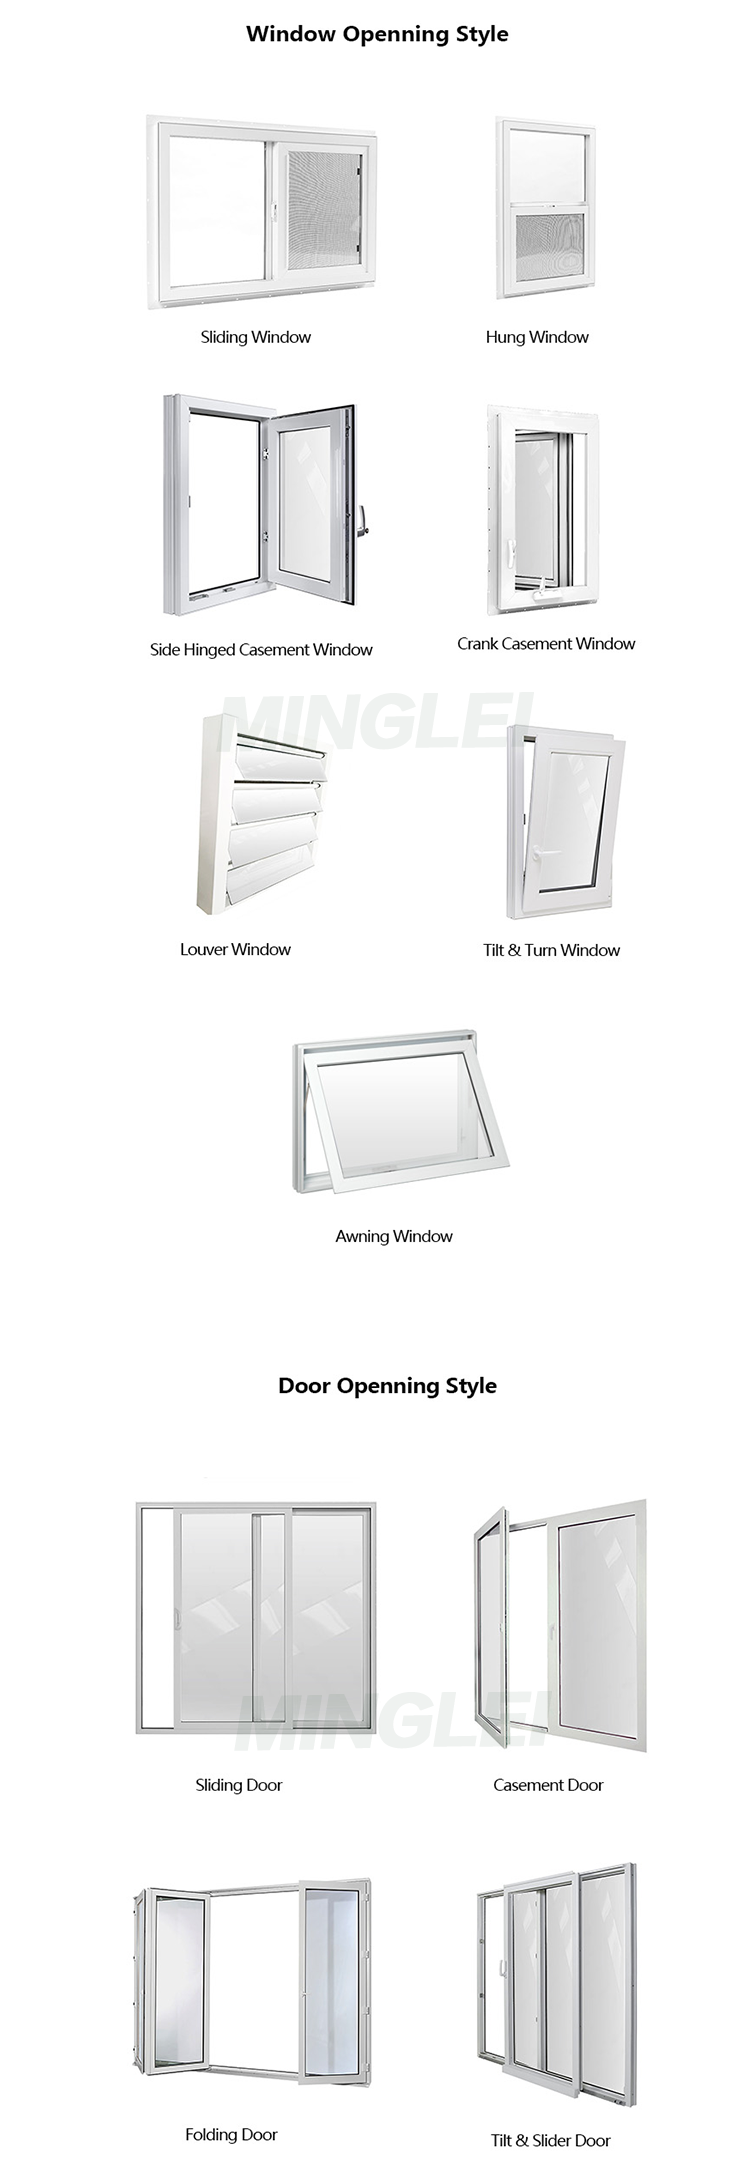 custom-made american upvc 36 x 60 36 x 48 casement window swing out 36 x 40 casement window